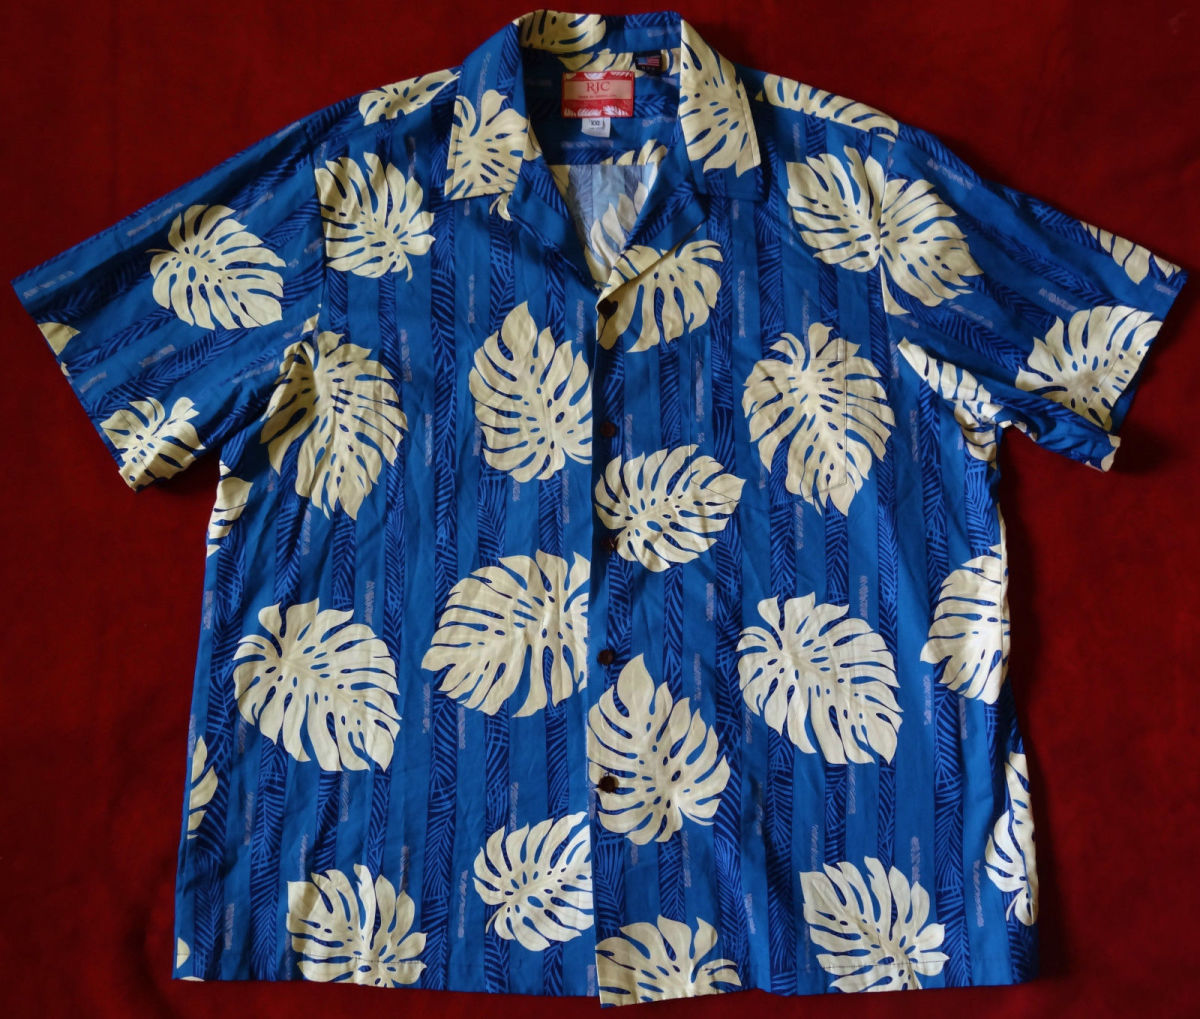 Mens Hawaiian Aloha Shirt from RJC - Made in Hawaii of 100% Cotton. With a beautiful  sea blue color print with Tropical Palm leaves.